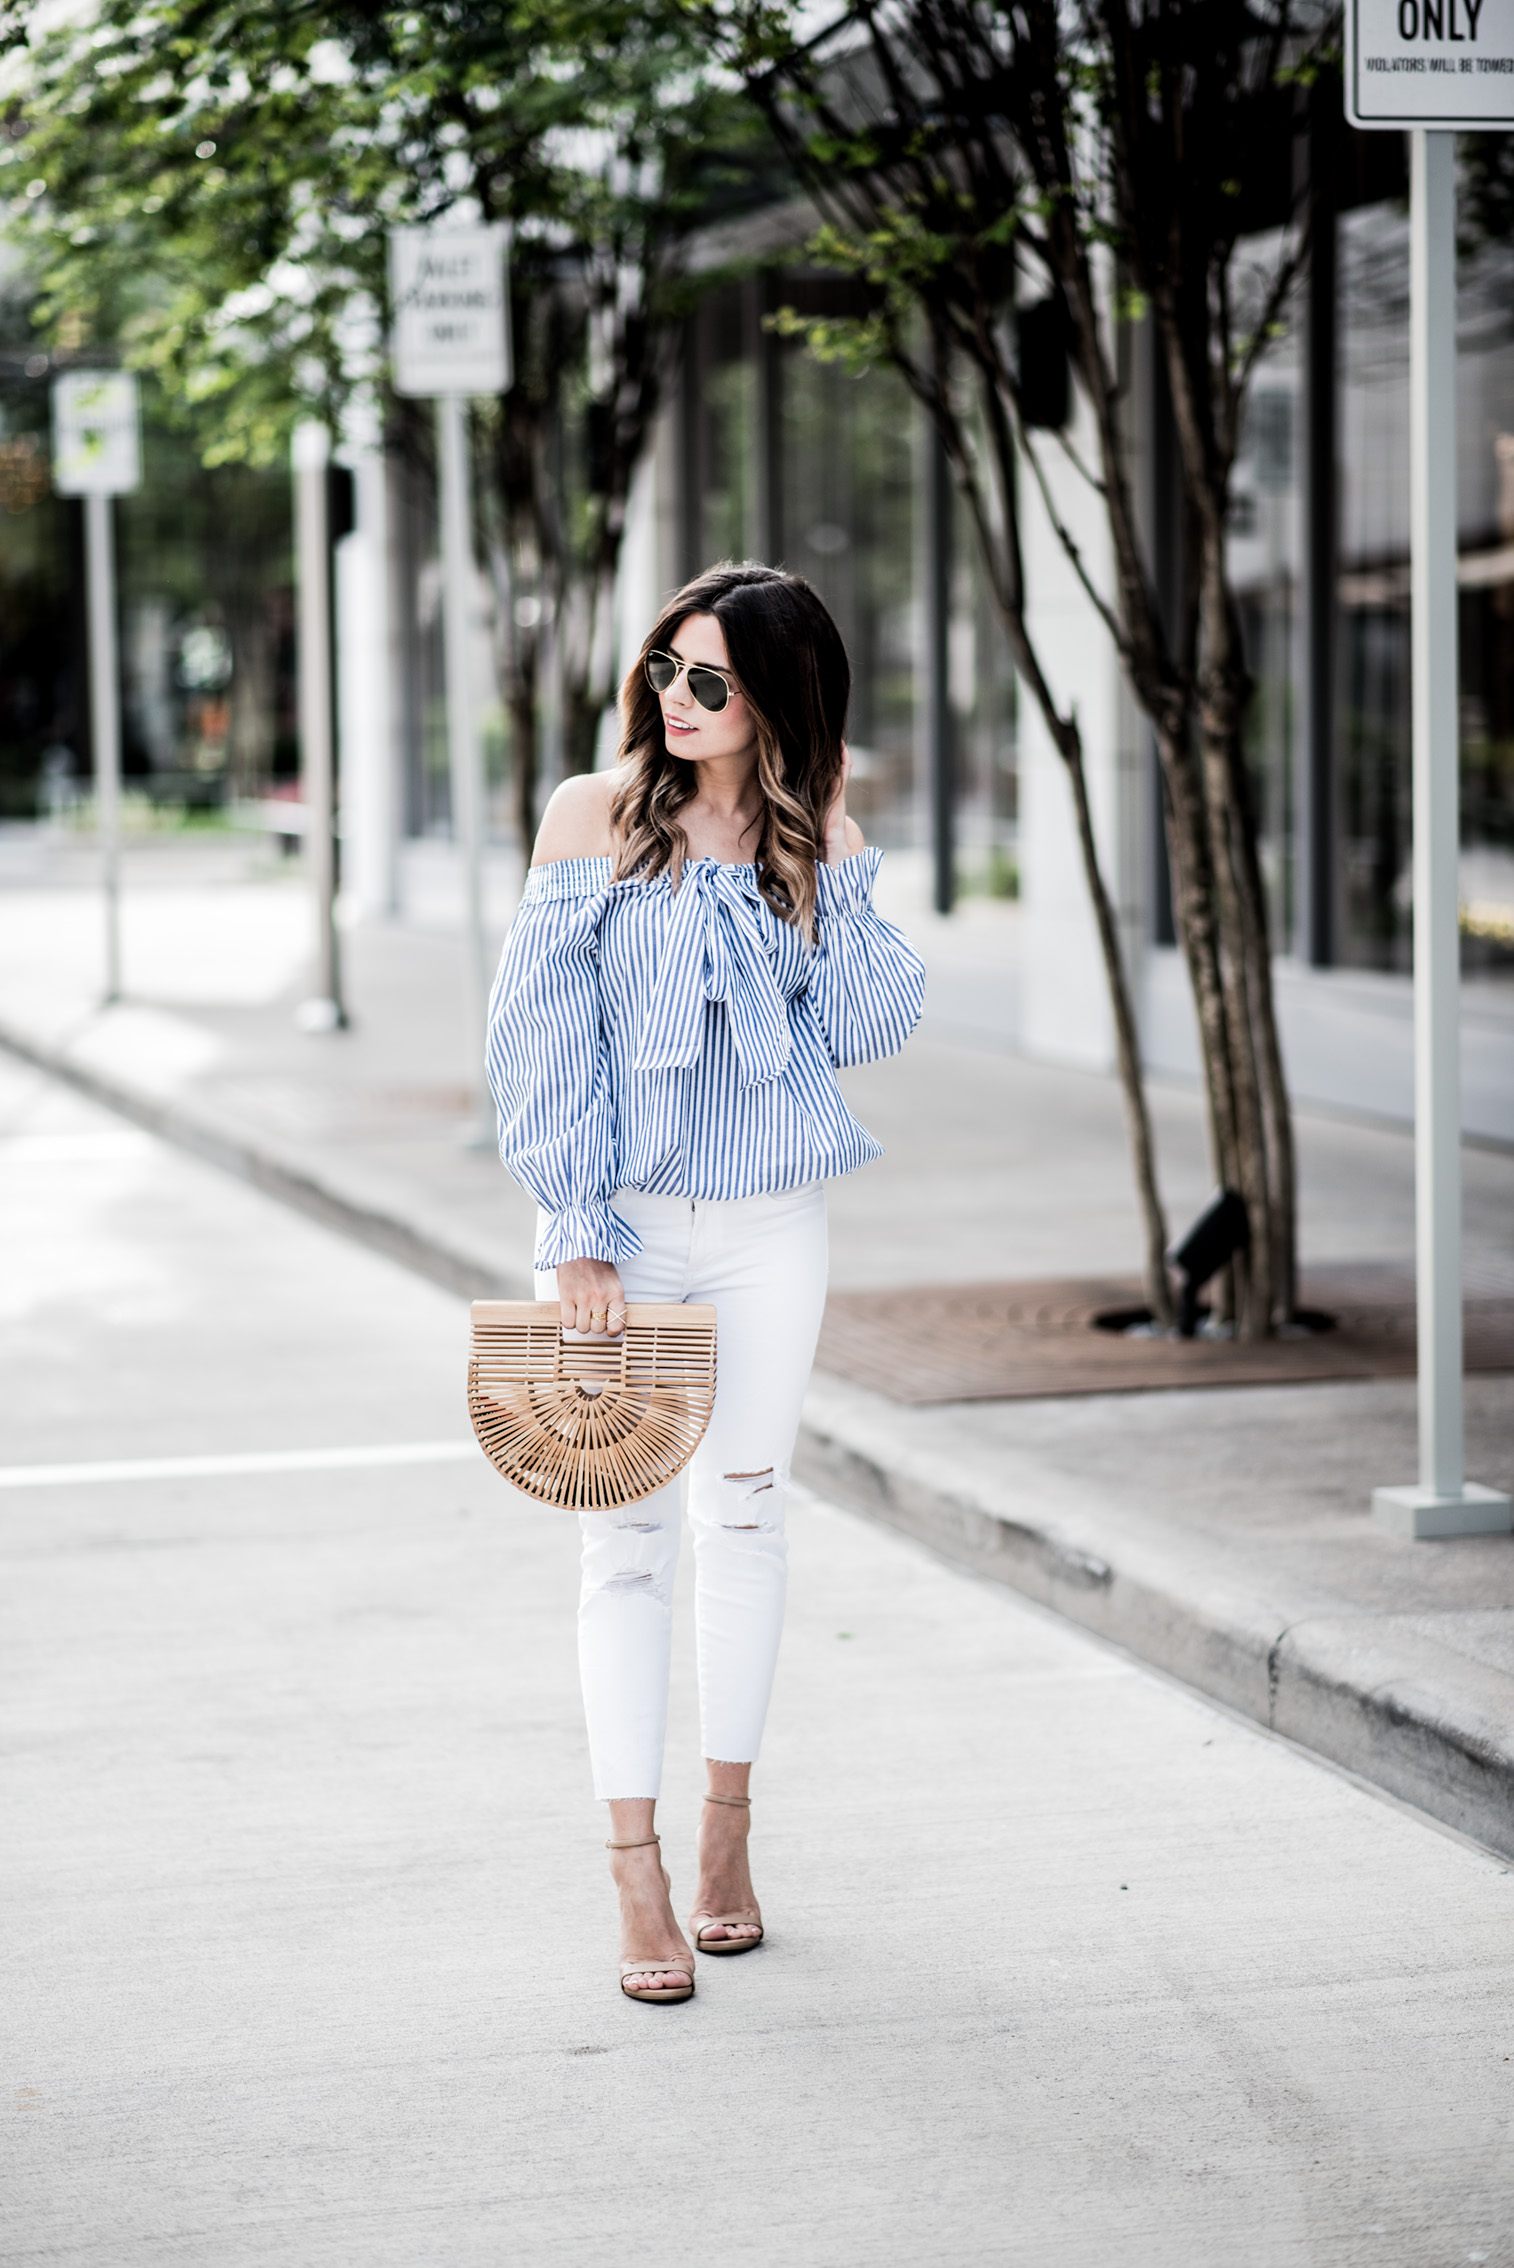 Tiffany Jais Houston fashion and lifestyle blogger | Striped off the shoulder top, white skinny jeans, small cult gaia bag, spring outfit ideas, street style fashion bloggers